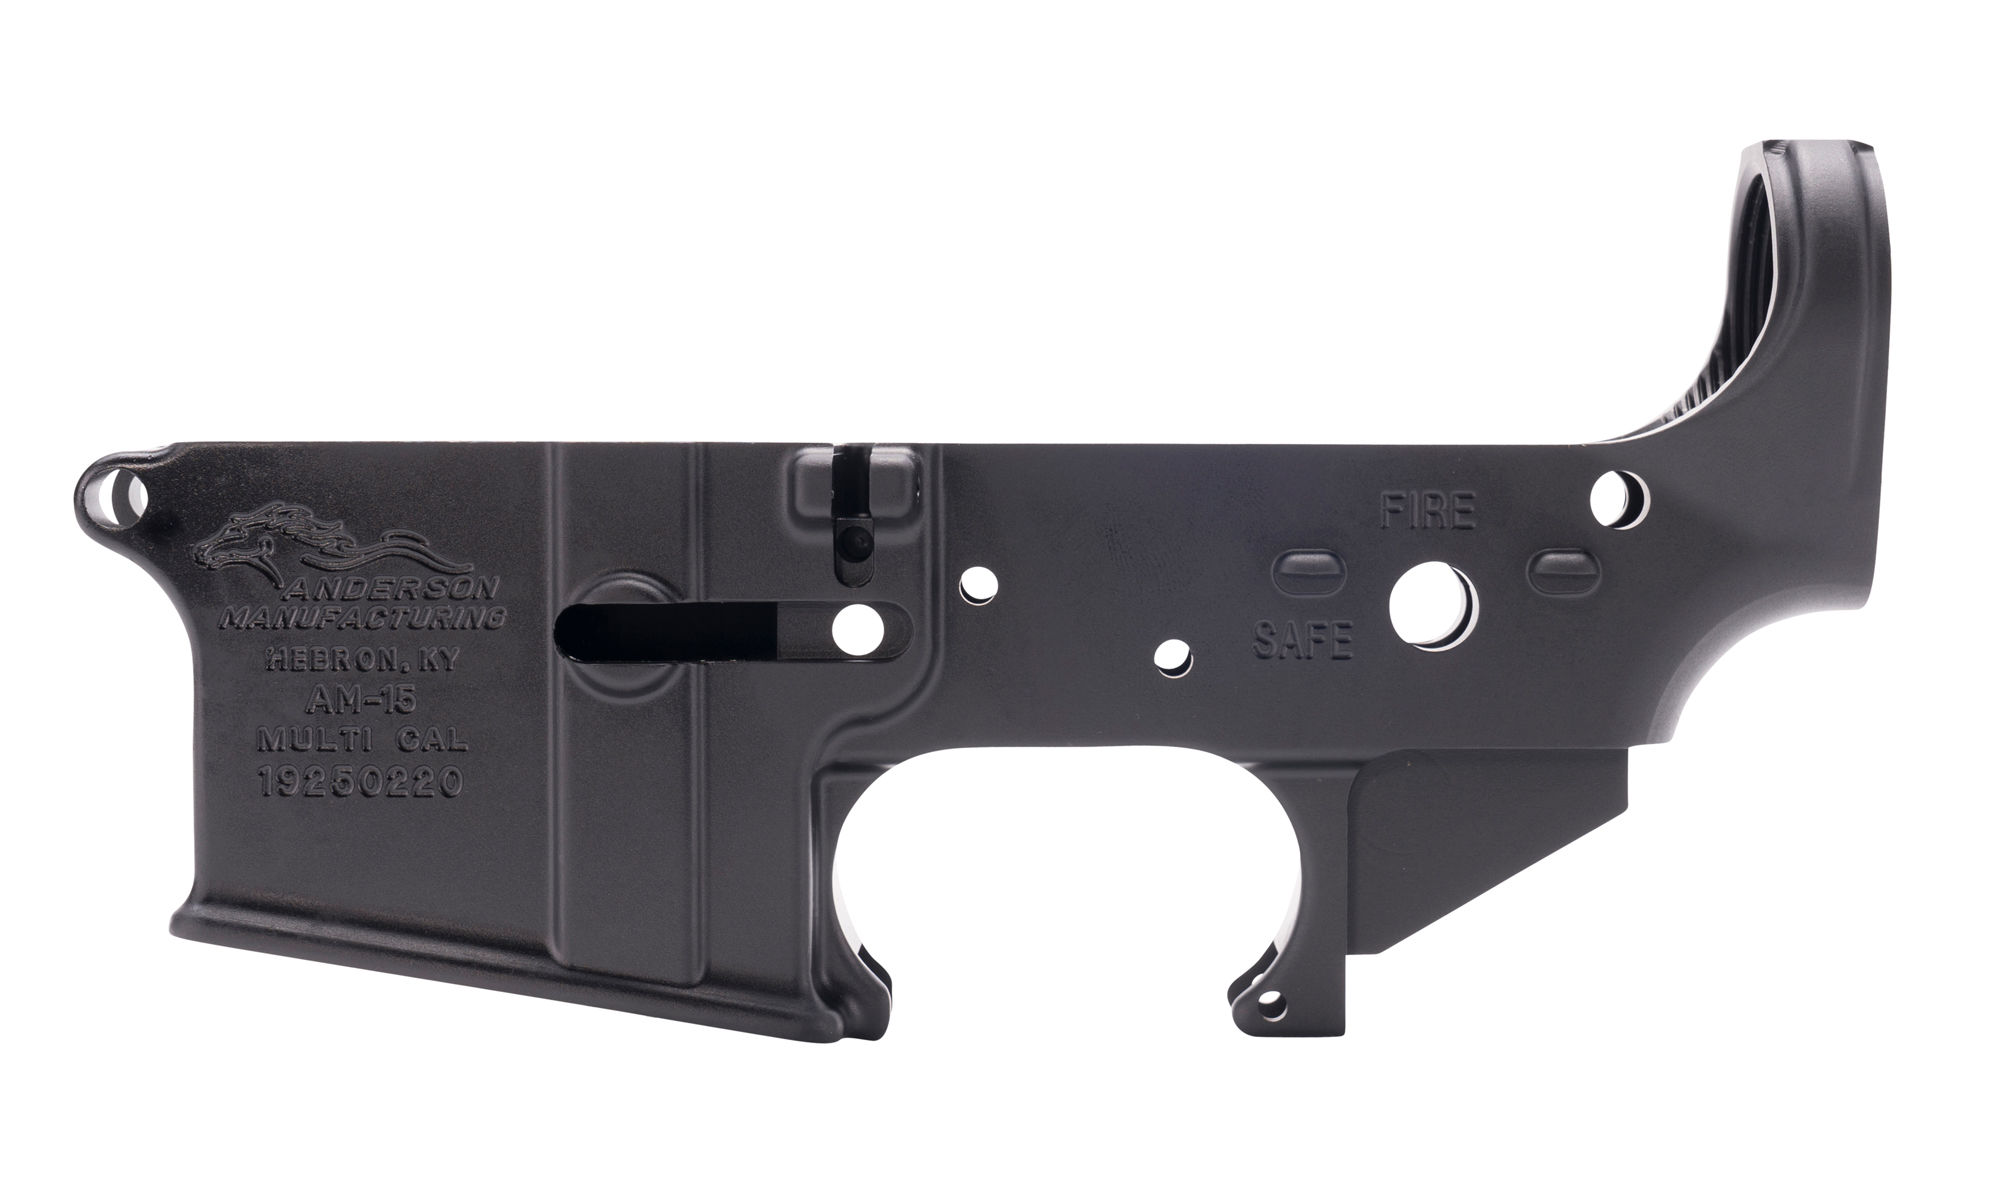 Anderson Manufacturing AM-15 Lower Receiver - AllArms LLC